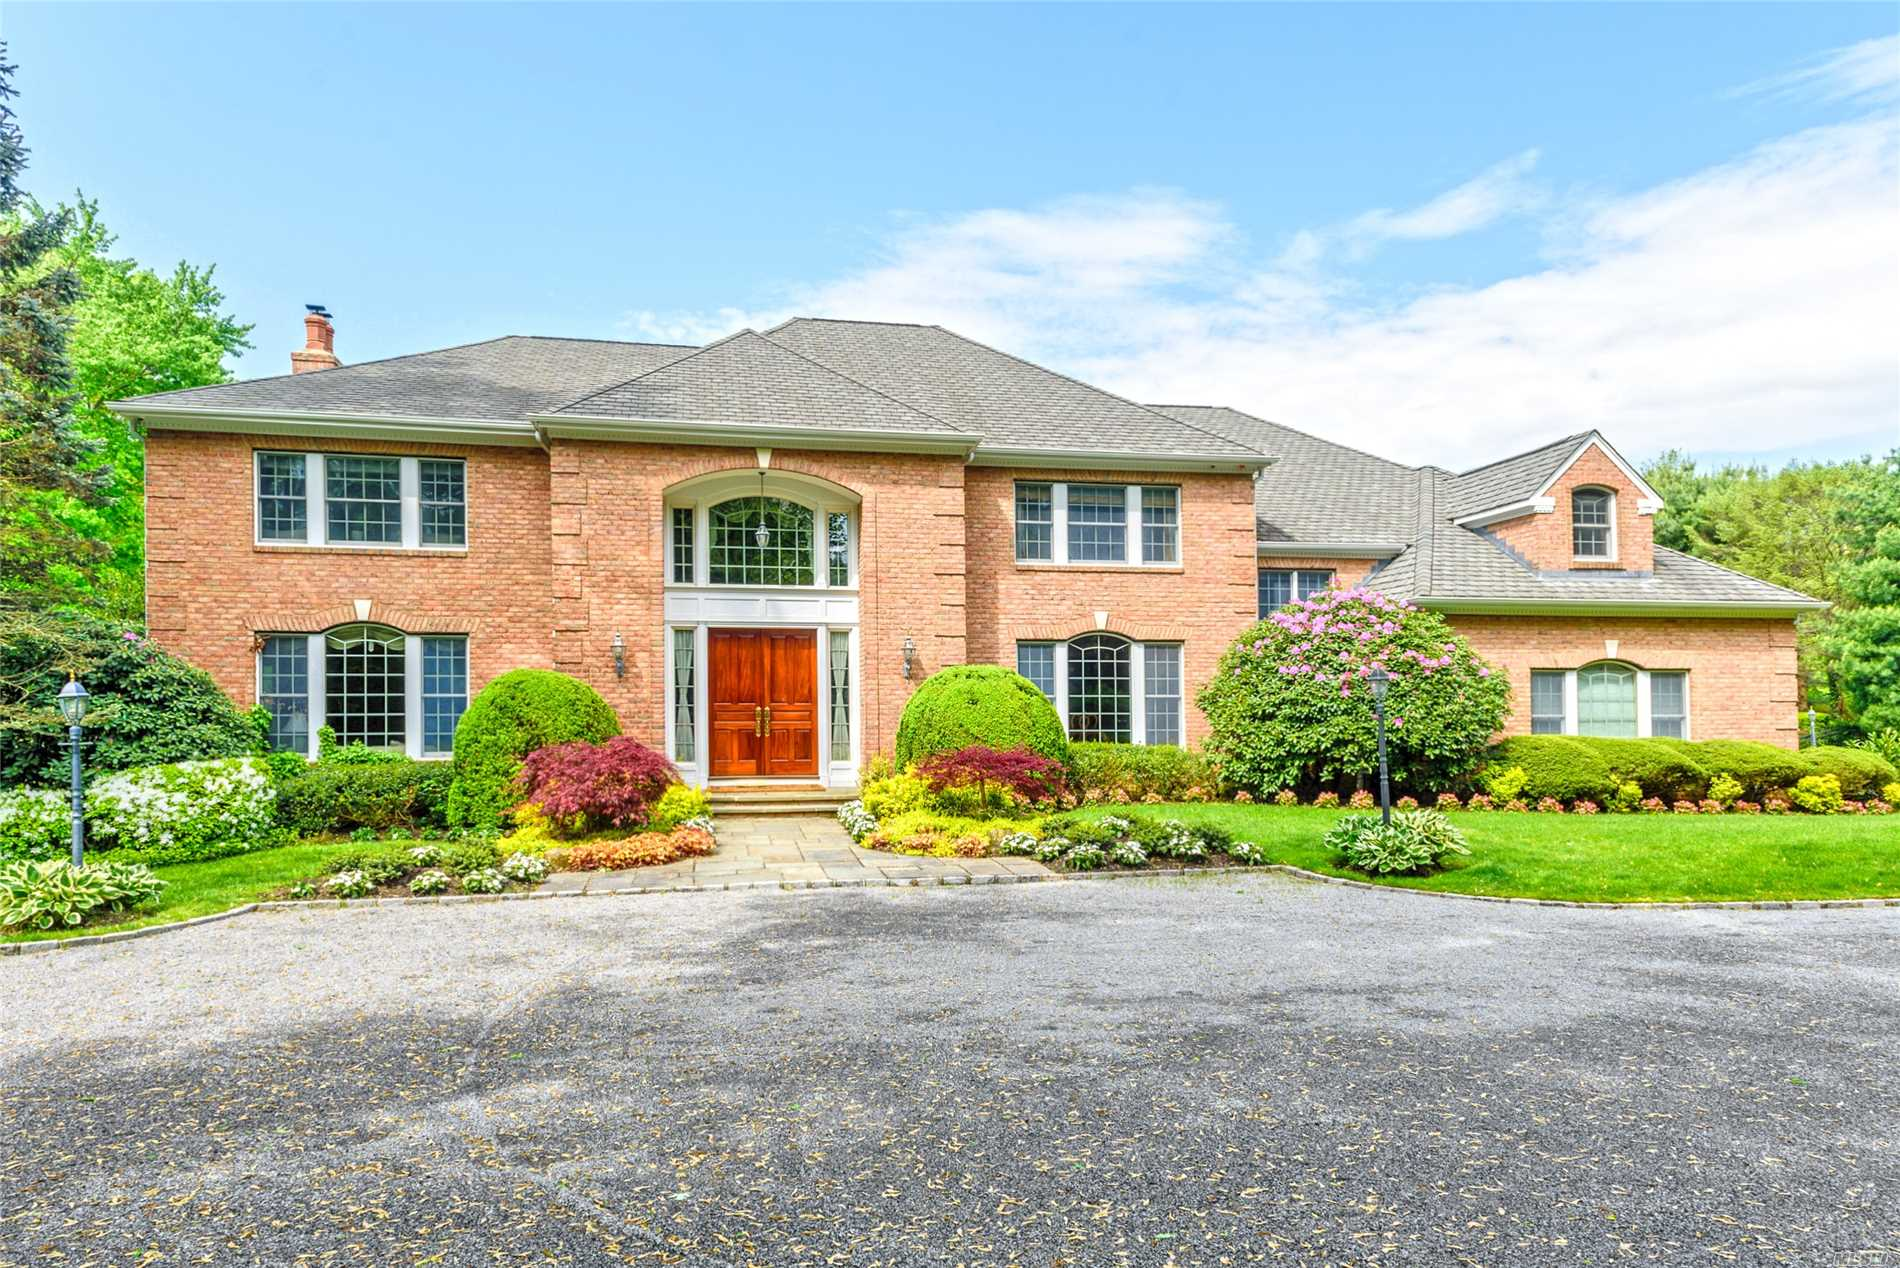 Magnificent Custom Built 7 Bedroom, 5.55 Bath Colonial. Well Designed Floor Plan, Large Principal Rooms, Beautiful Millwork, Chef's Kitchen, Huge Master Suite, High Ceilings, Finished Lower Level, W/Home Theater, Wine Cellar, Gym, Sauna.In-Ground Gunite Pool, Spa, & Cabana. 3 Car Garage. Generator. No Expense Spared.Meticulously Maintained. Natural Gas Available On Street. 2 Magnificently Landscaped, Private Acres Within A Cul-De Sac.Truly The Epitome Of Gold Coast Living.